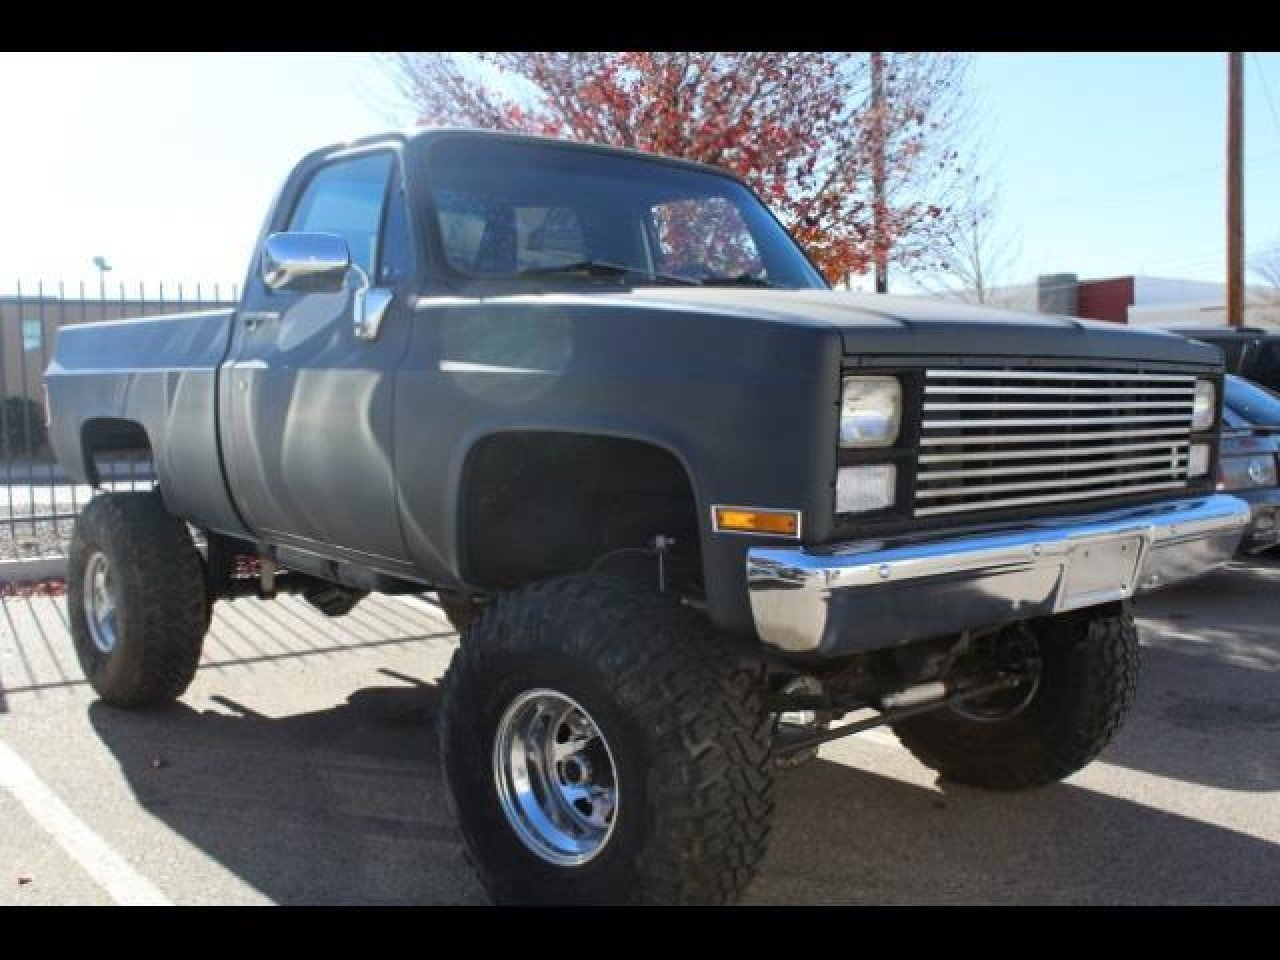 Autotrader Albuquerque >> 1975 GMC Sierra C/K1500 for sale near ALBUQUERQUE, New Mexico 87113 - Classics on Autotrader